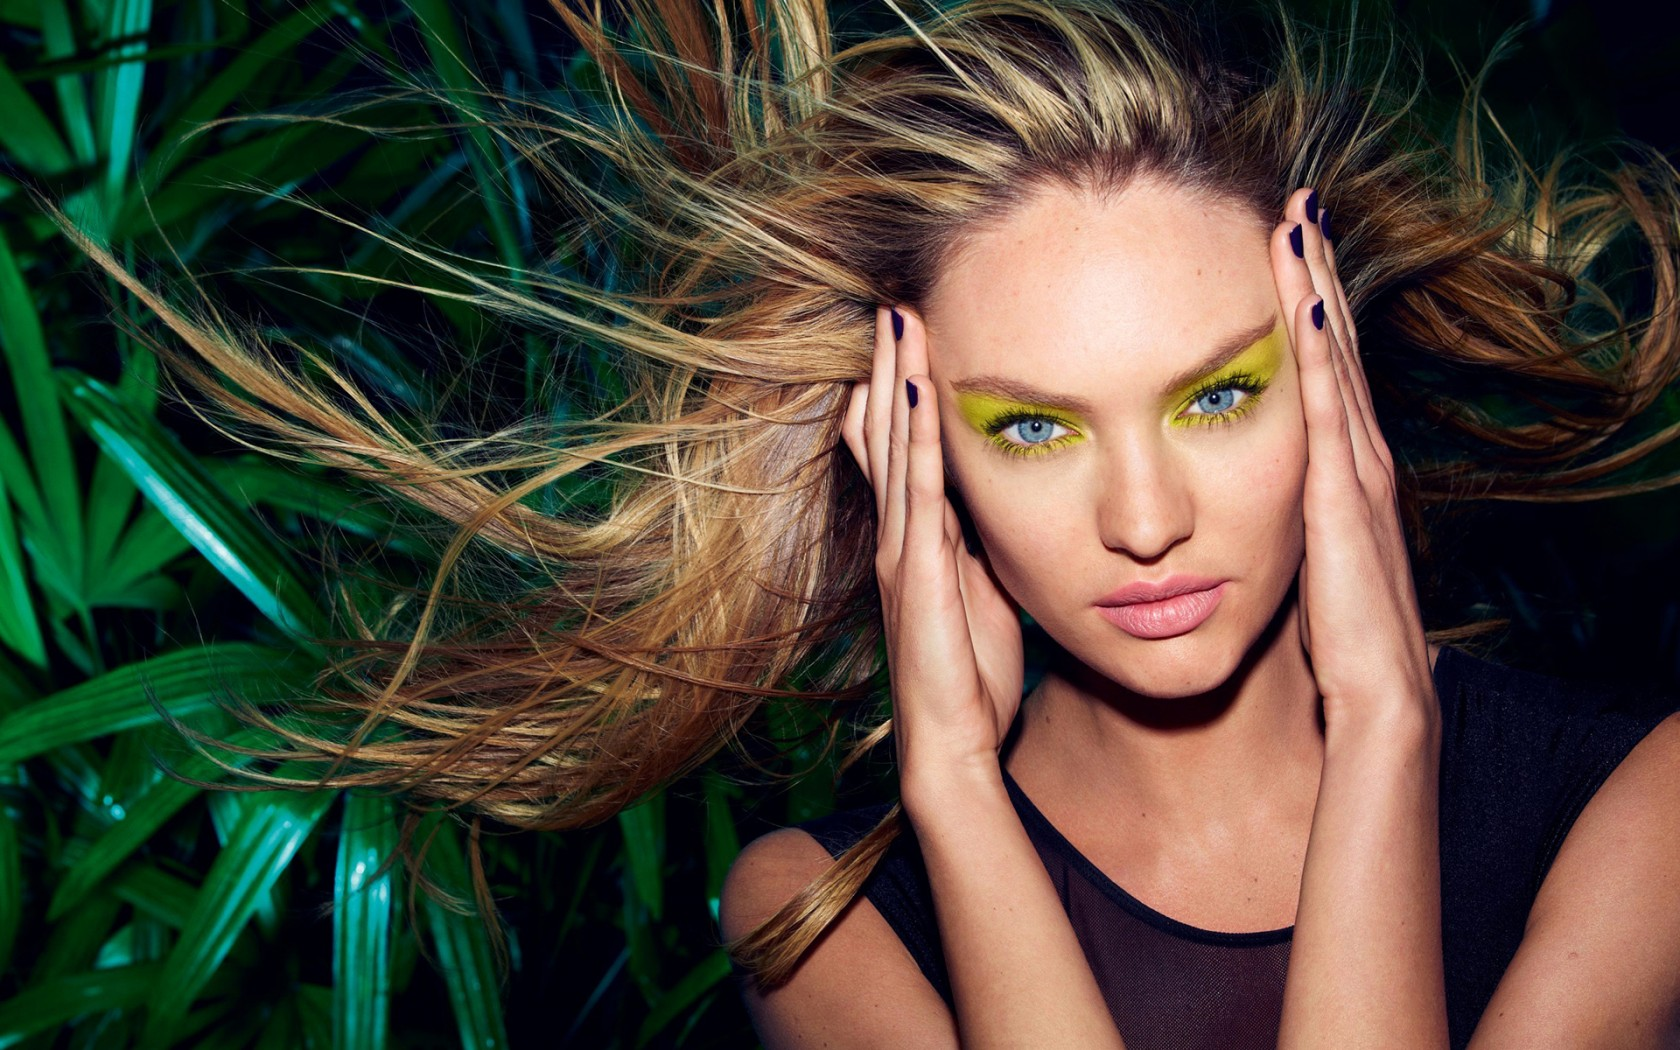 Desktop Wallpaper For Windows 7 Cars Candice Swanepoel 2014 Wallpapers Hd Wallpapers Id 14086